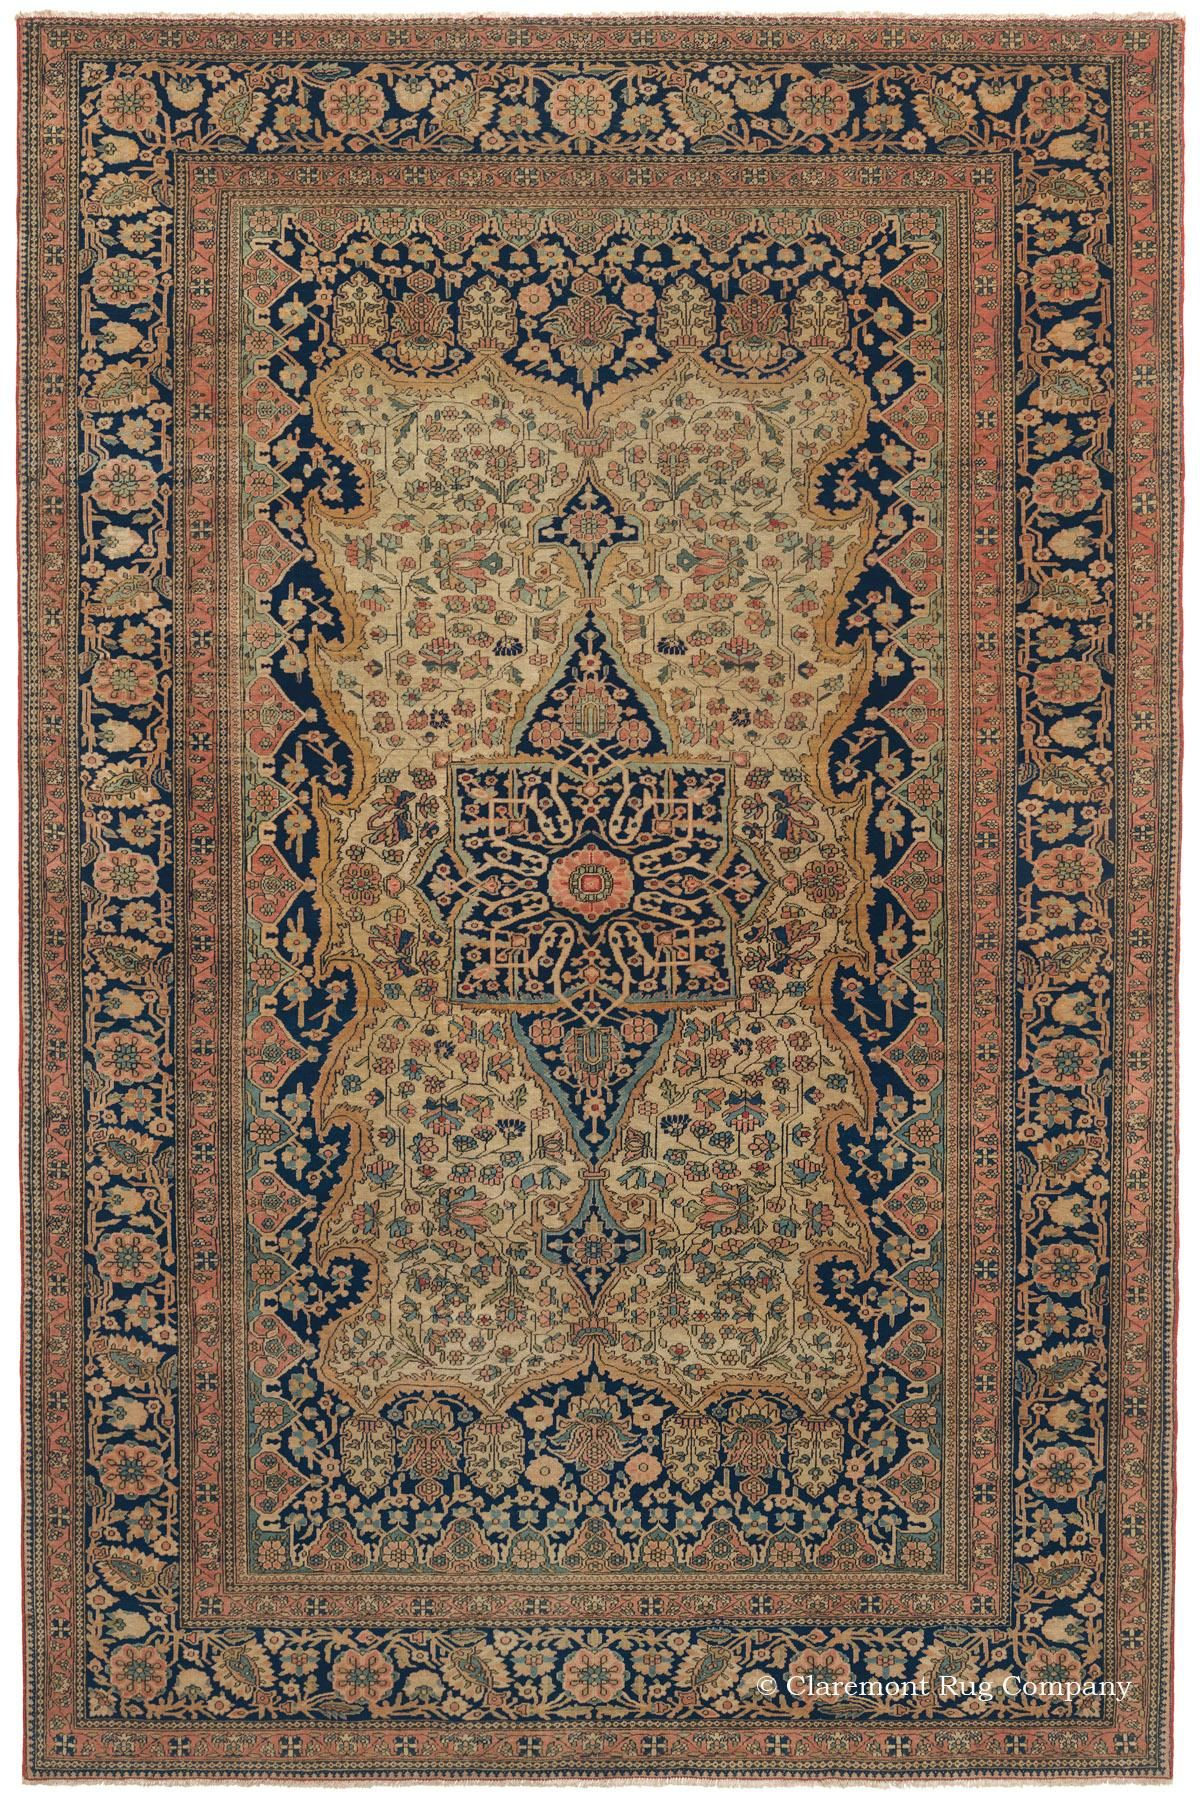 One Of The True Jewels Among Many Highly Collectible Area Size Antique Oriental Rugs In